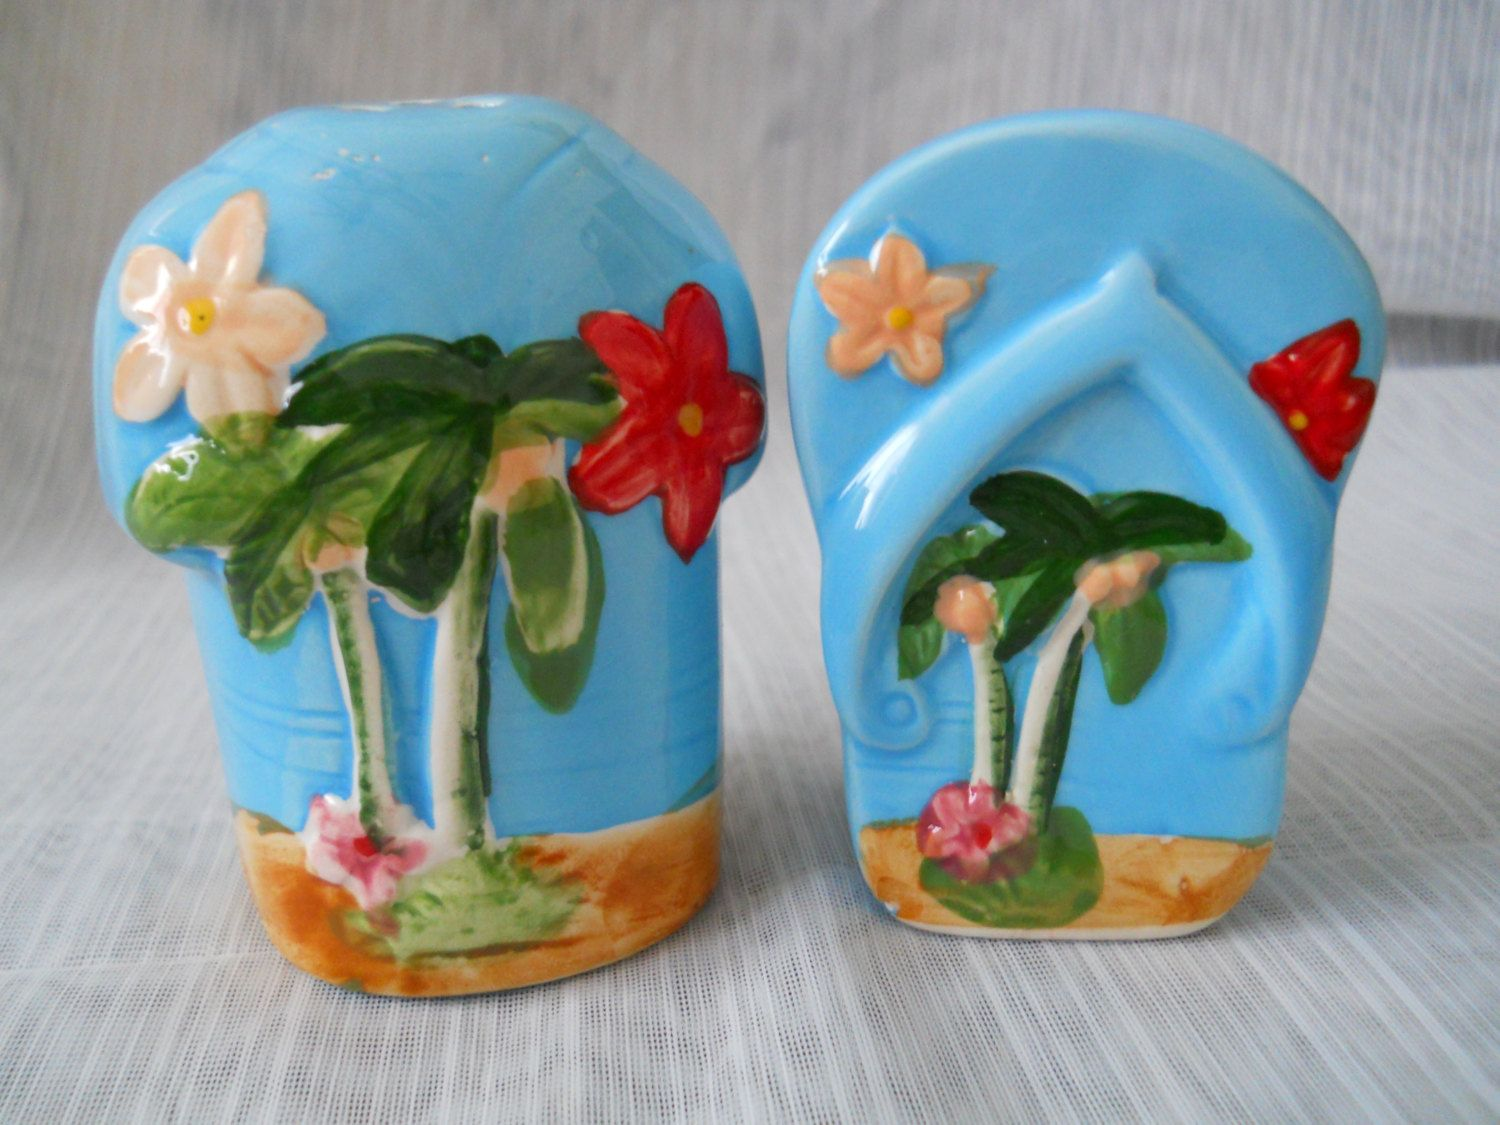 Beach Flip Flop and Shirt Salt and Pepper Shakers - vintage, collectible, beach, summer by DEWshophere on Etsy